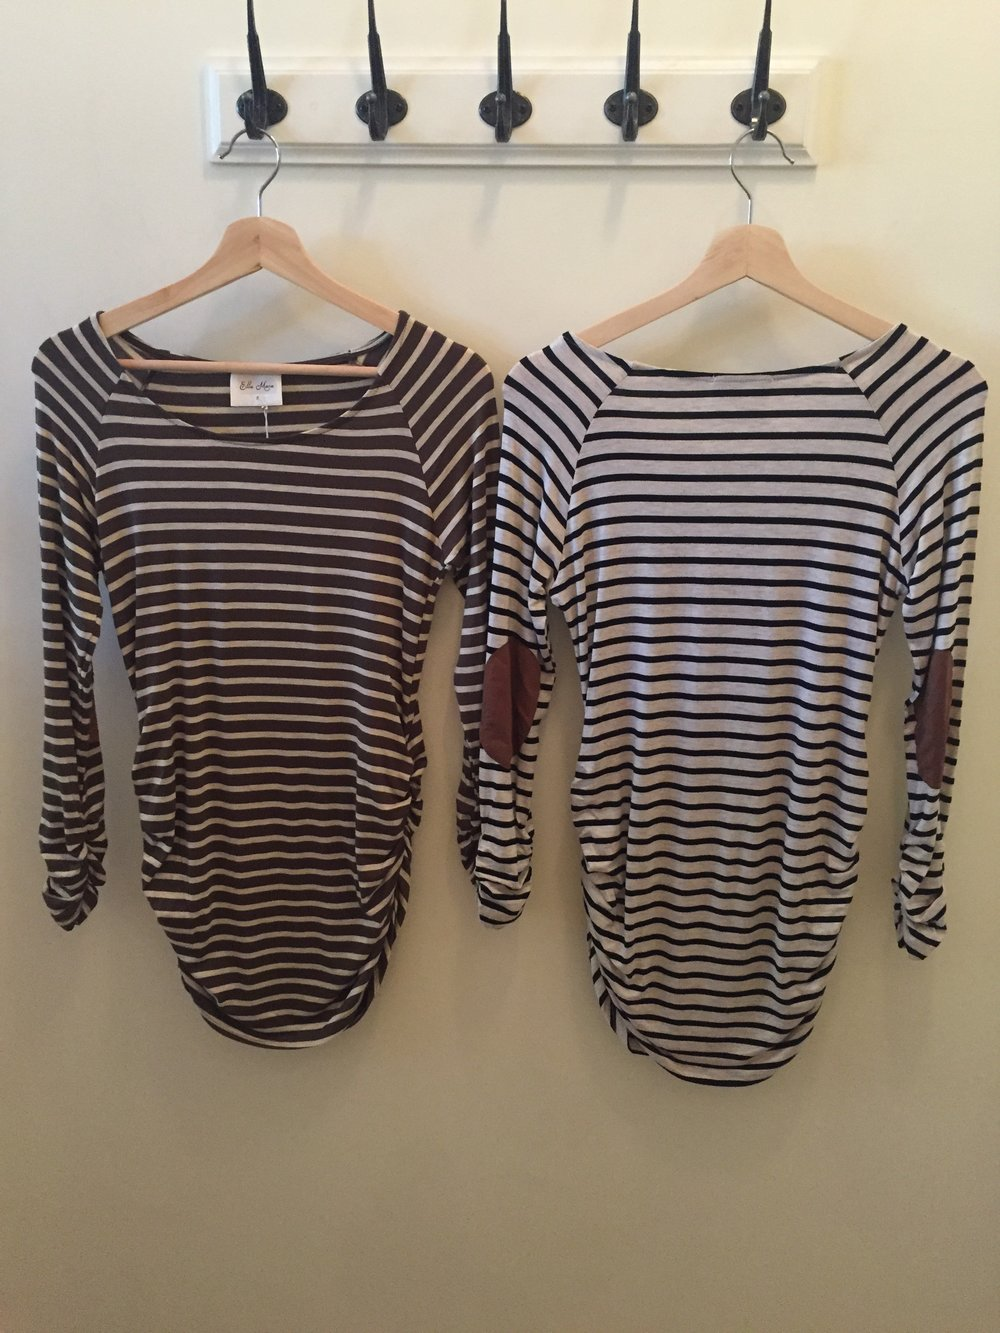 Ruched Stripe Top, $35